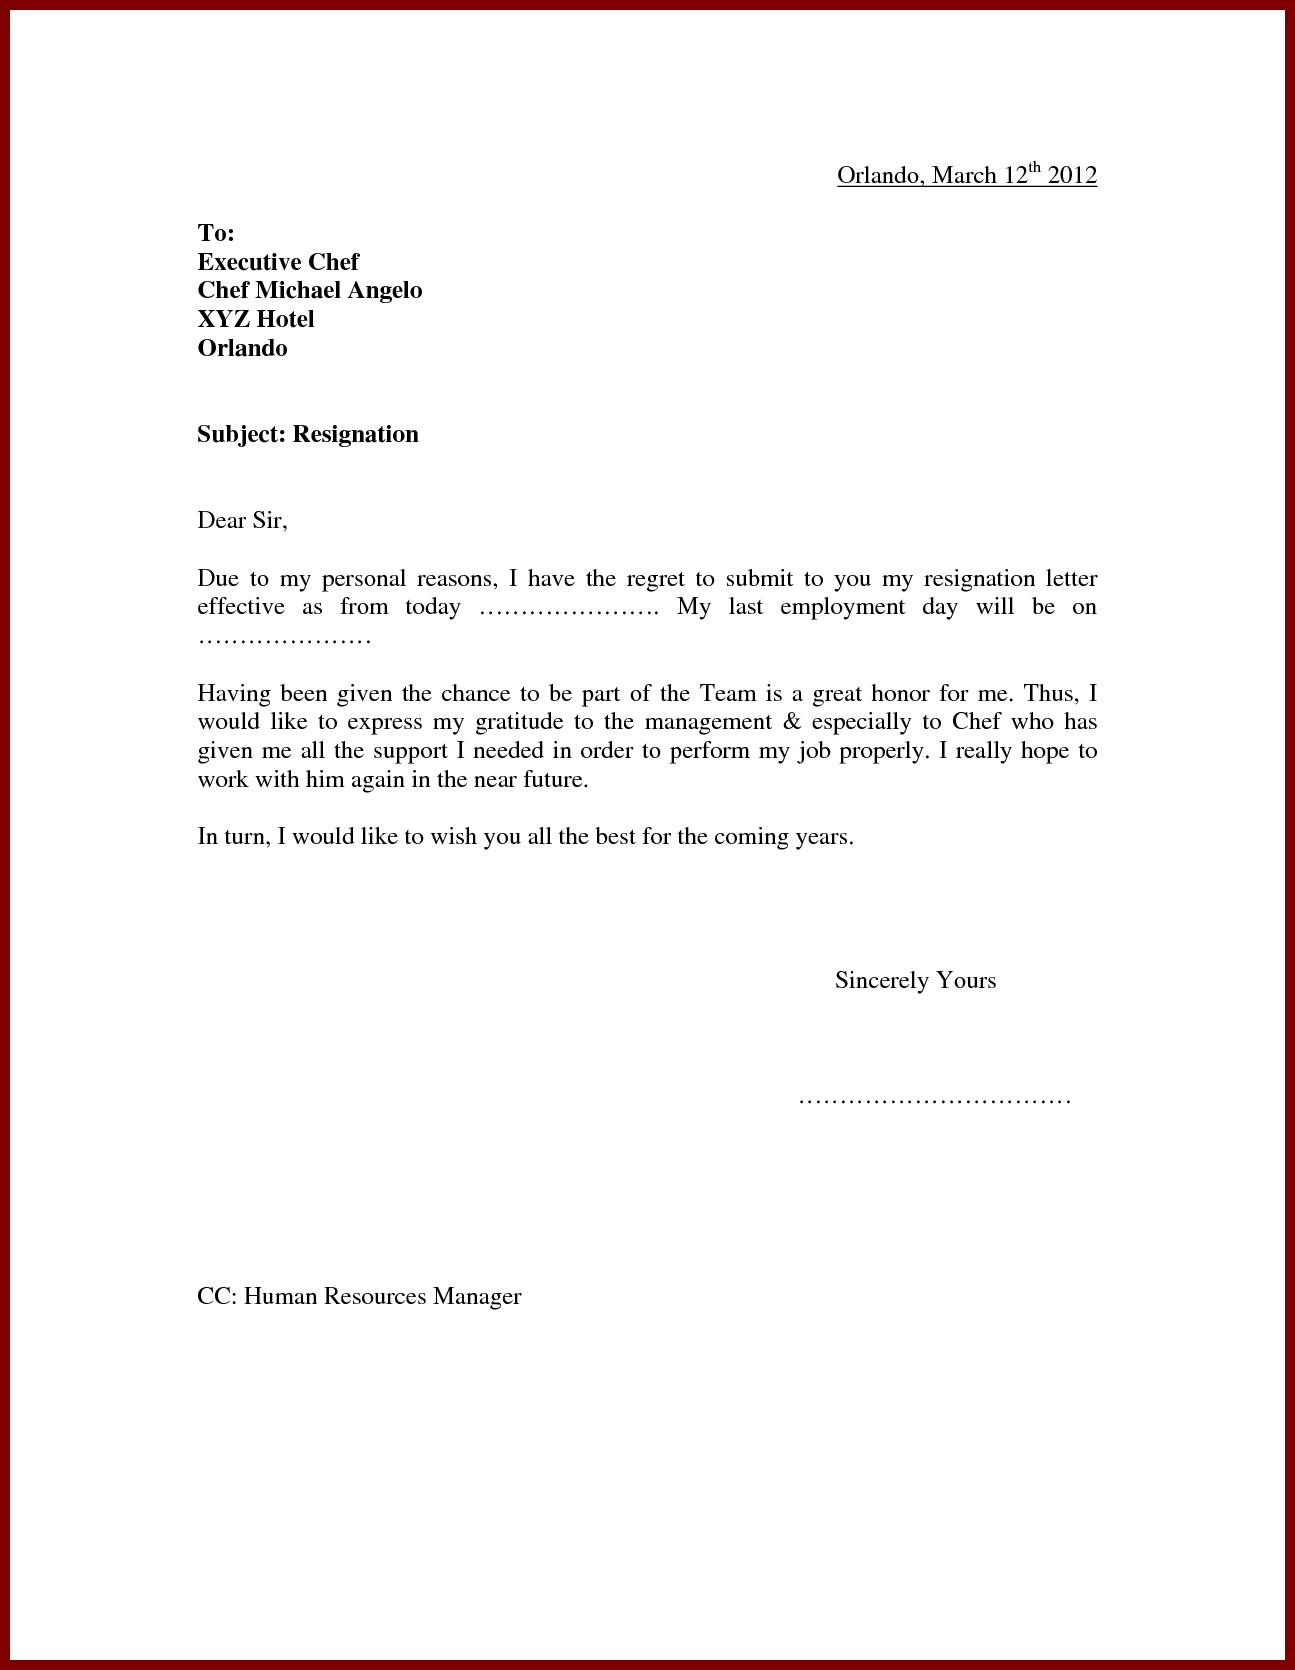 Resignation Letters For Personal Reasons Pin By Raja1769 On Mknk Resignation Letter Letter Sample